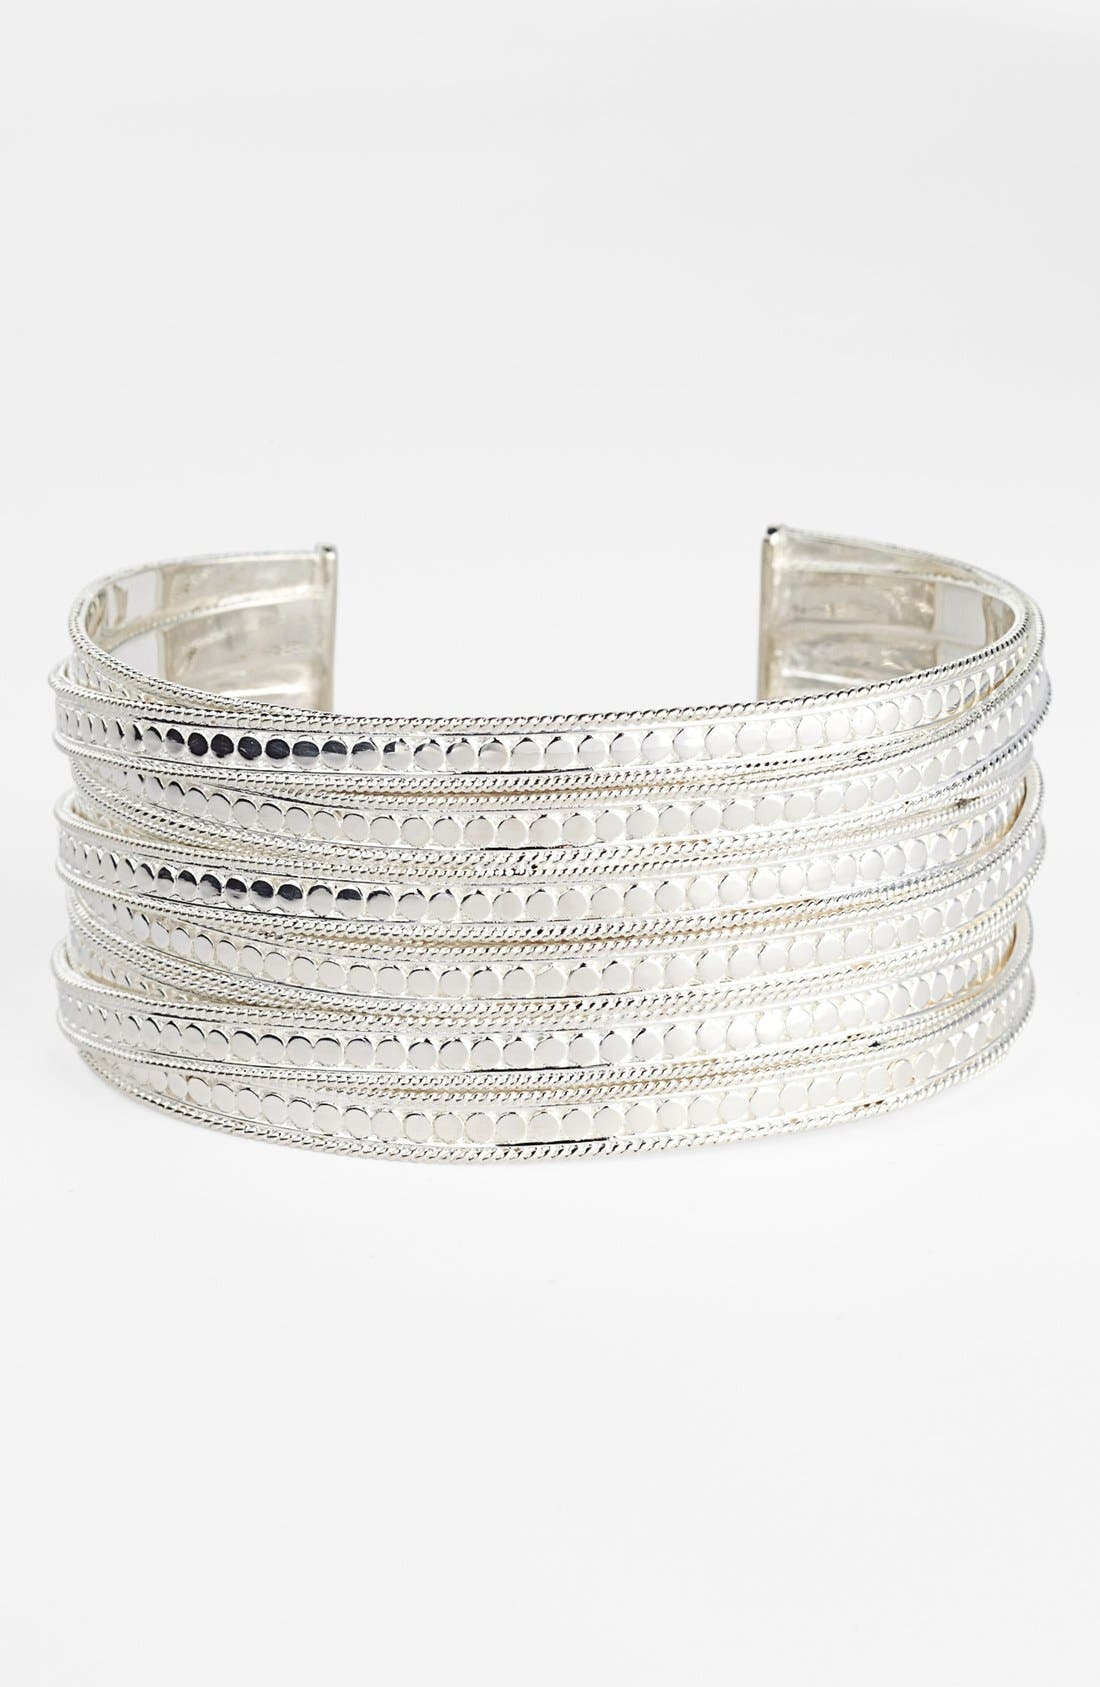 Main Image - Anna Beck 'Timor' Twisted Cuff Bracelet (Online Only)